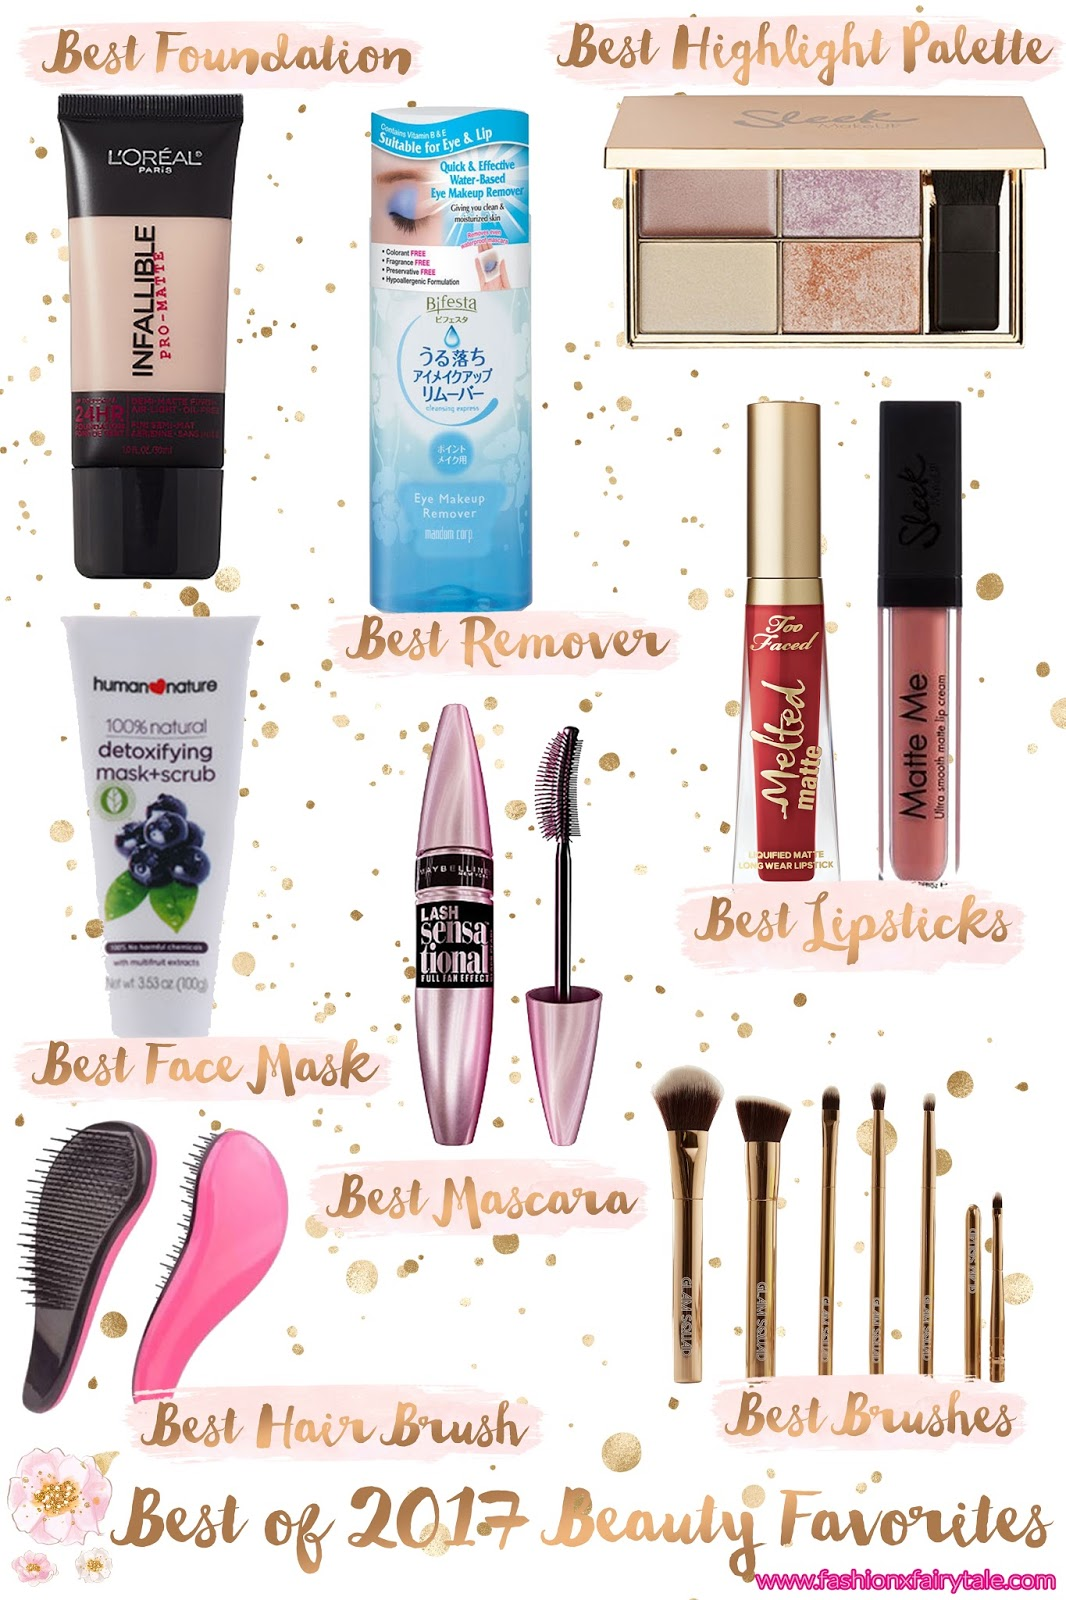 Best of 2017 Beauty Favorites